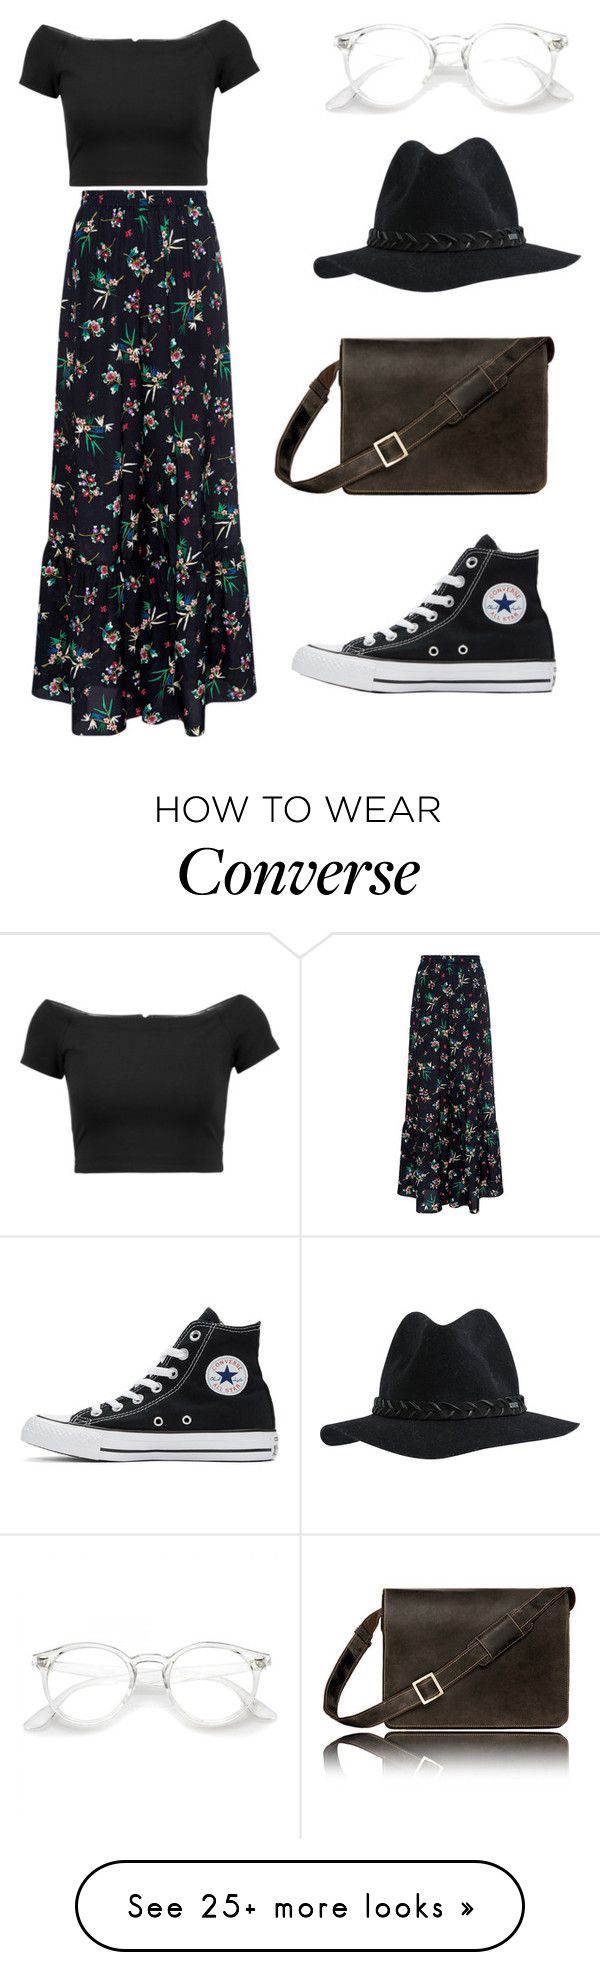 """""""Untitled #101"""" by vitoriaeinert on Polyvore featuring RED Valentino, Alice + Olivia, Converse and RVCA"""